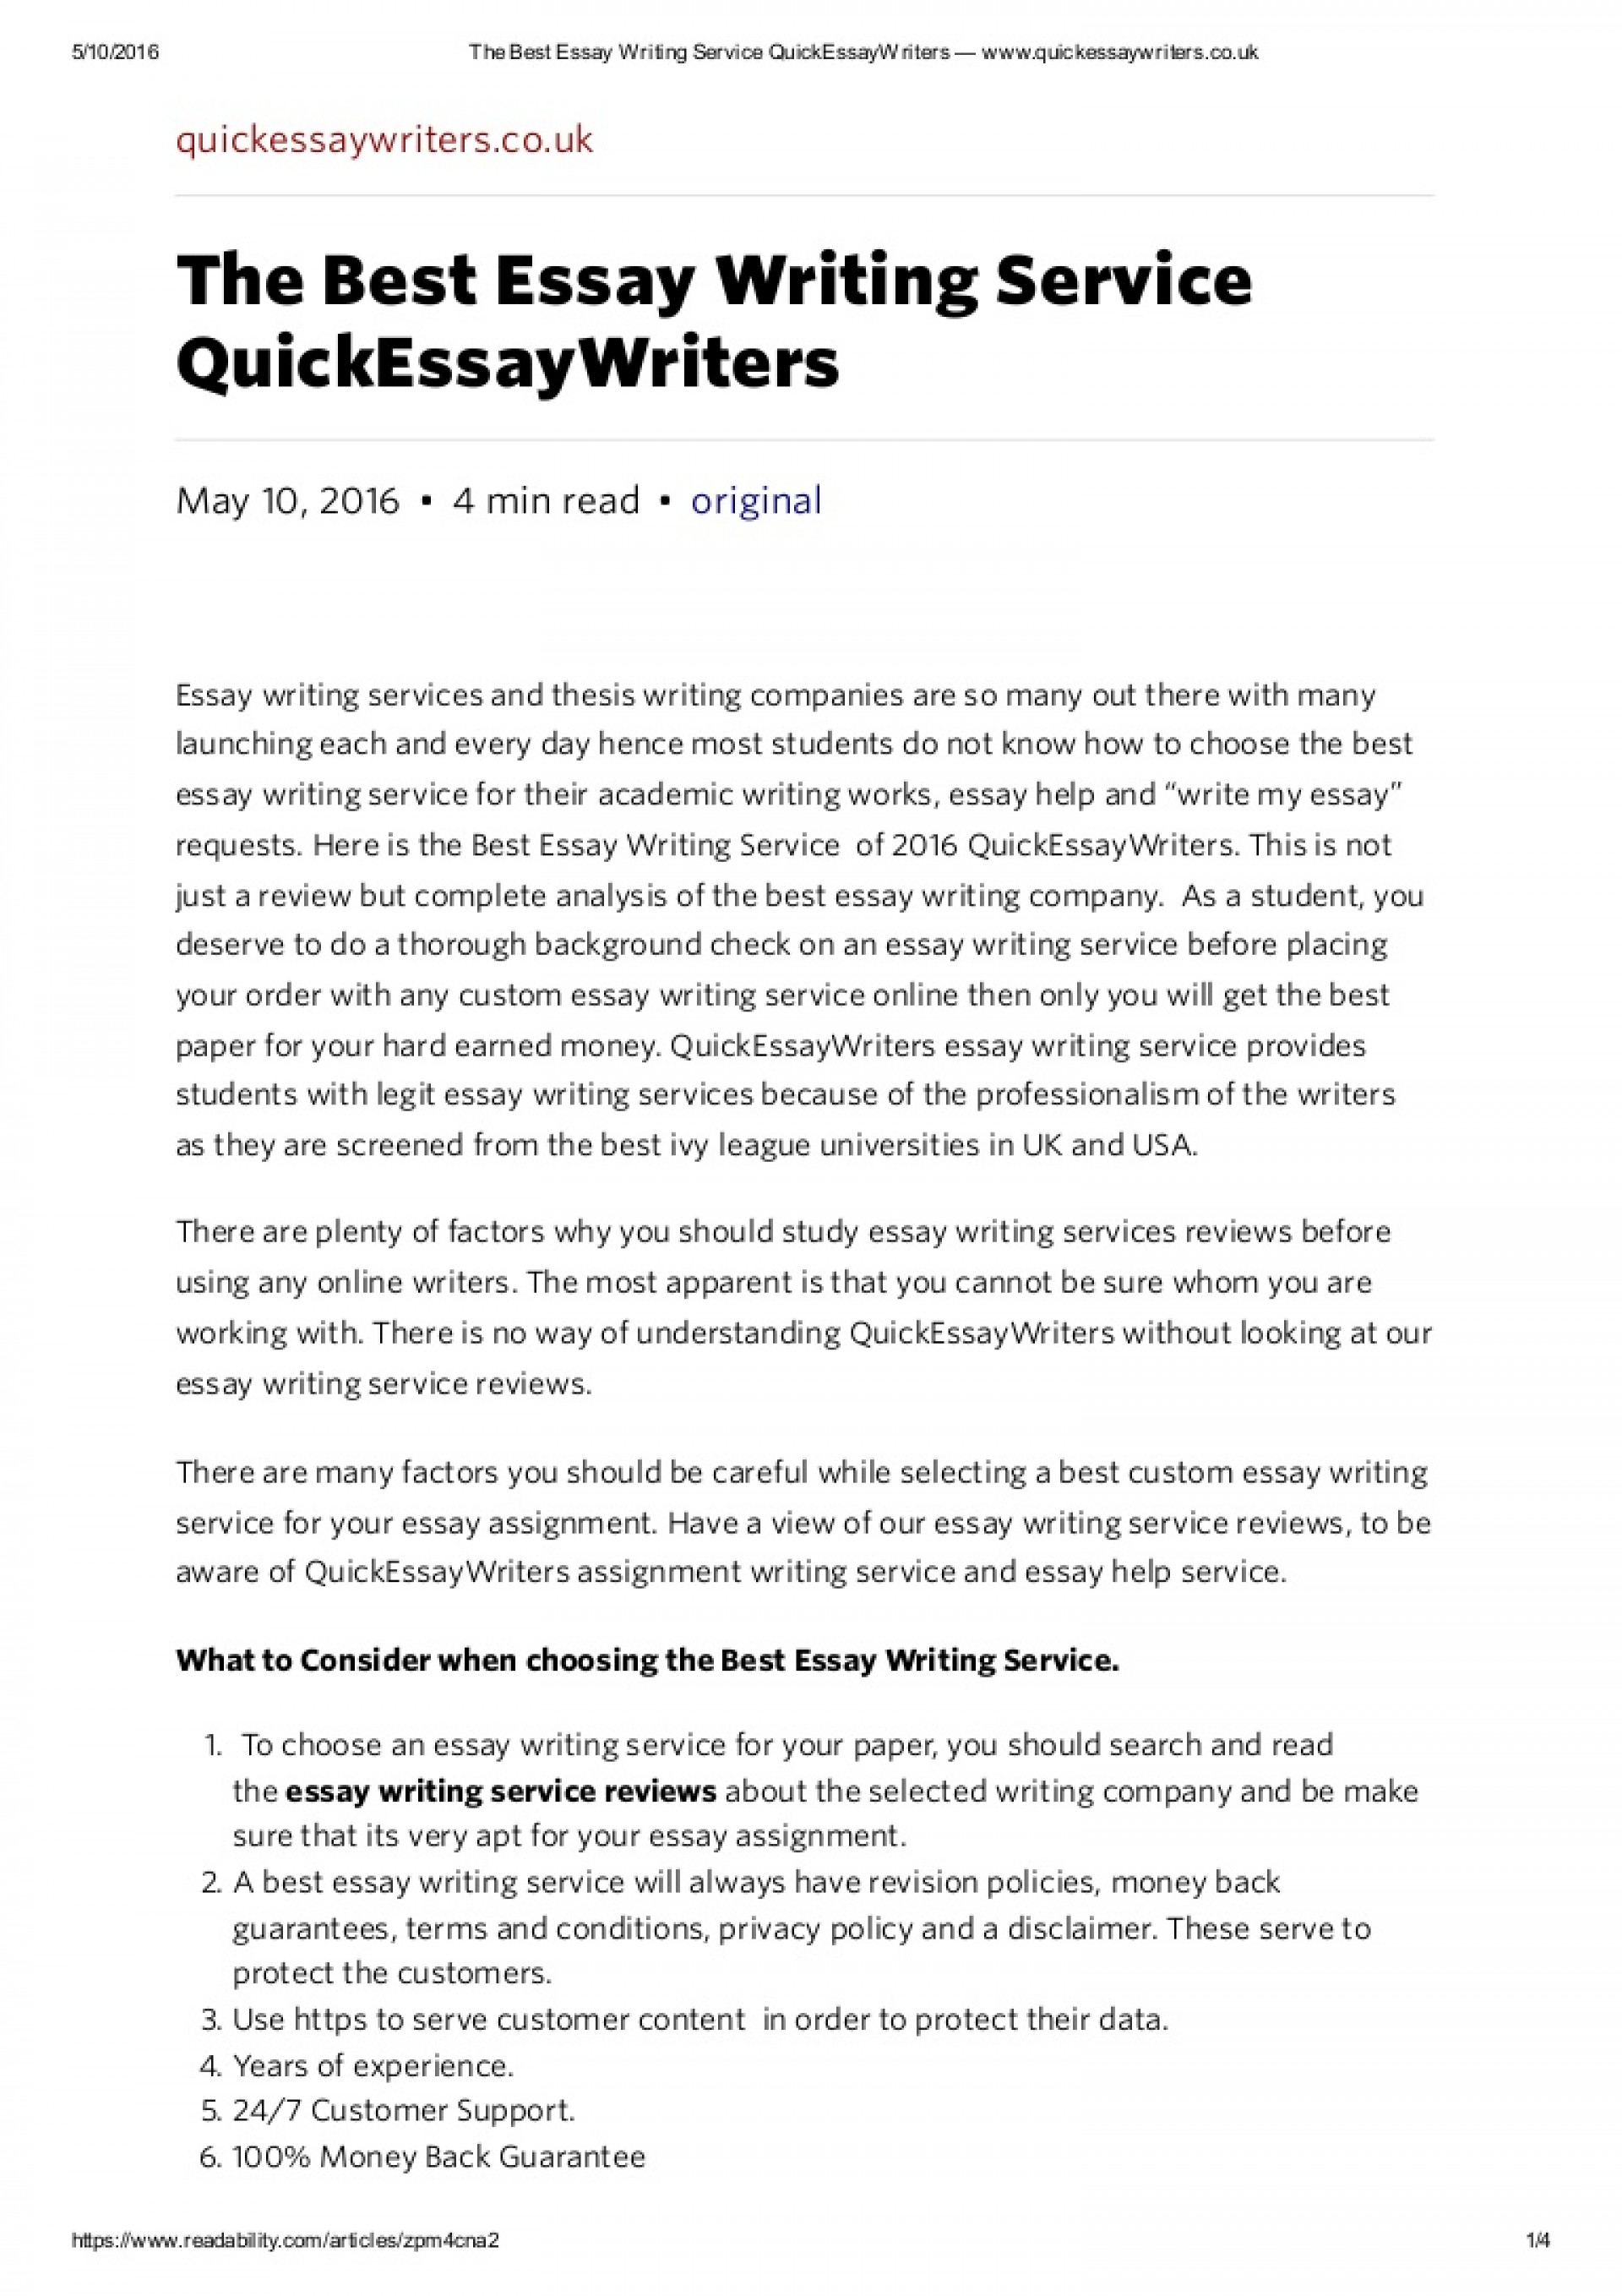 006 The Best Essay Writing Service Quickessaywriters Www Thebestessaywritingservicequickessaywriterswww Thumbn Top Companies Sites Uk Websites 1920